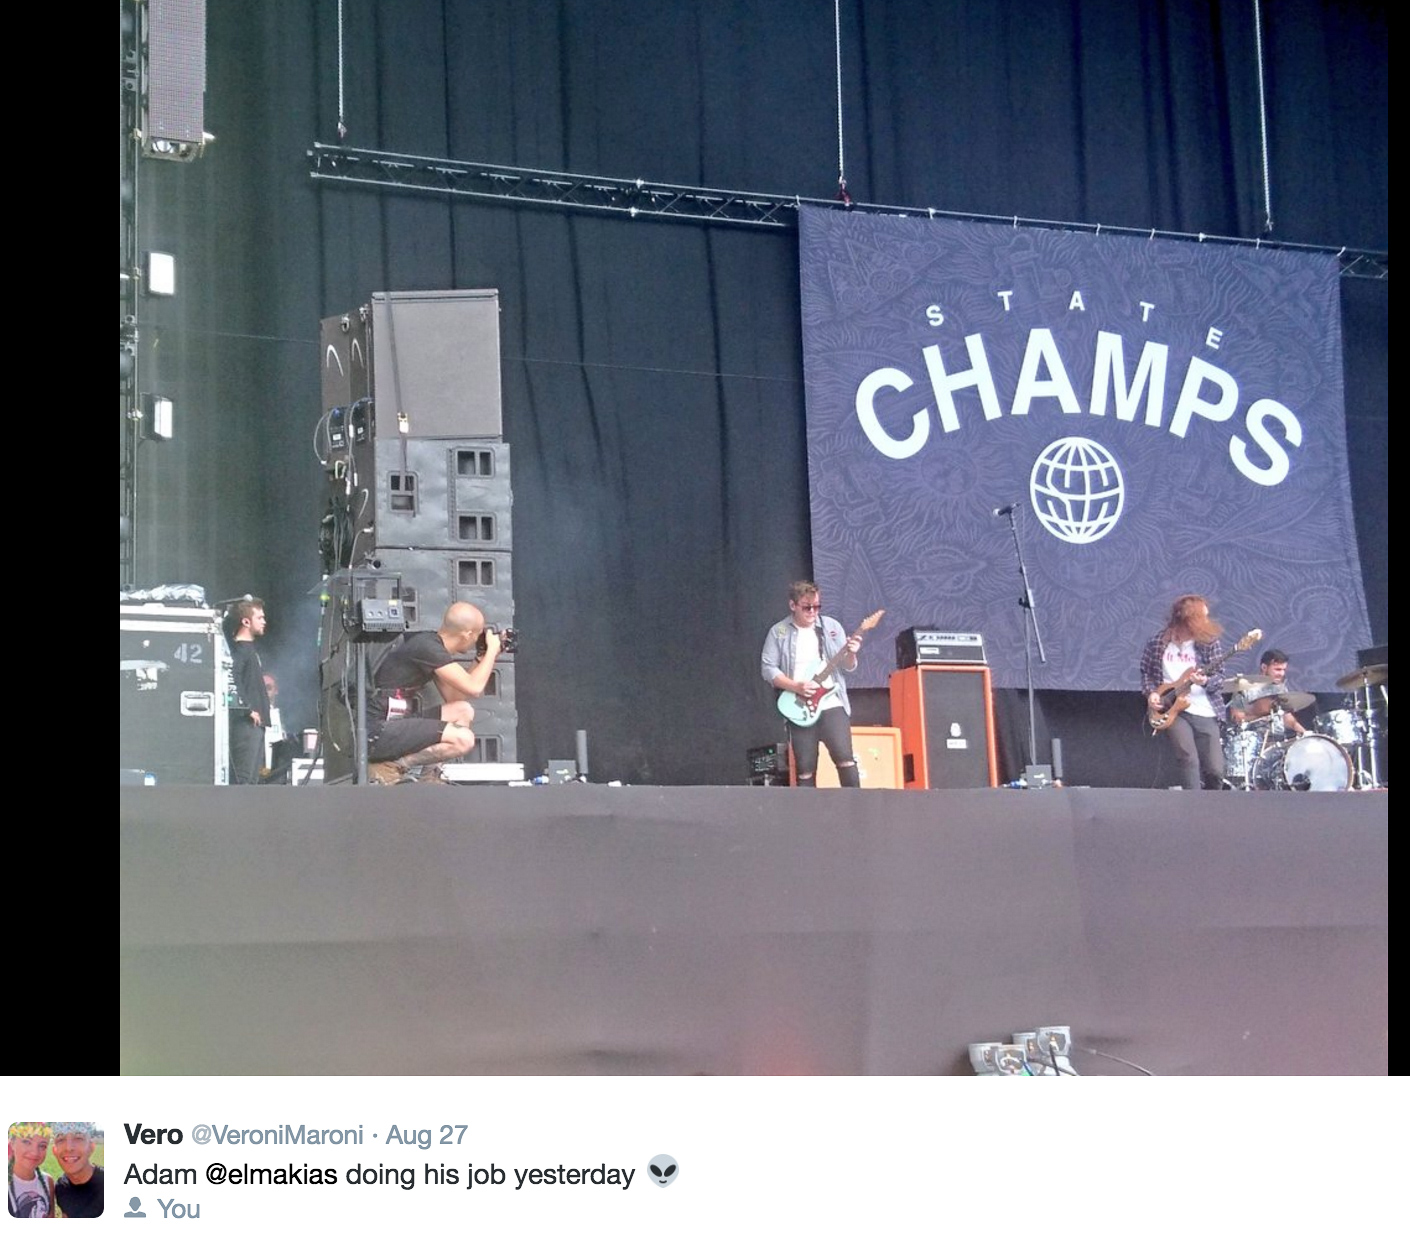 This is me creeping on State Champs